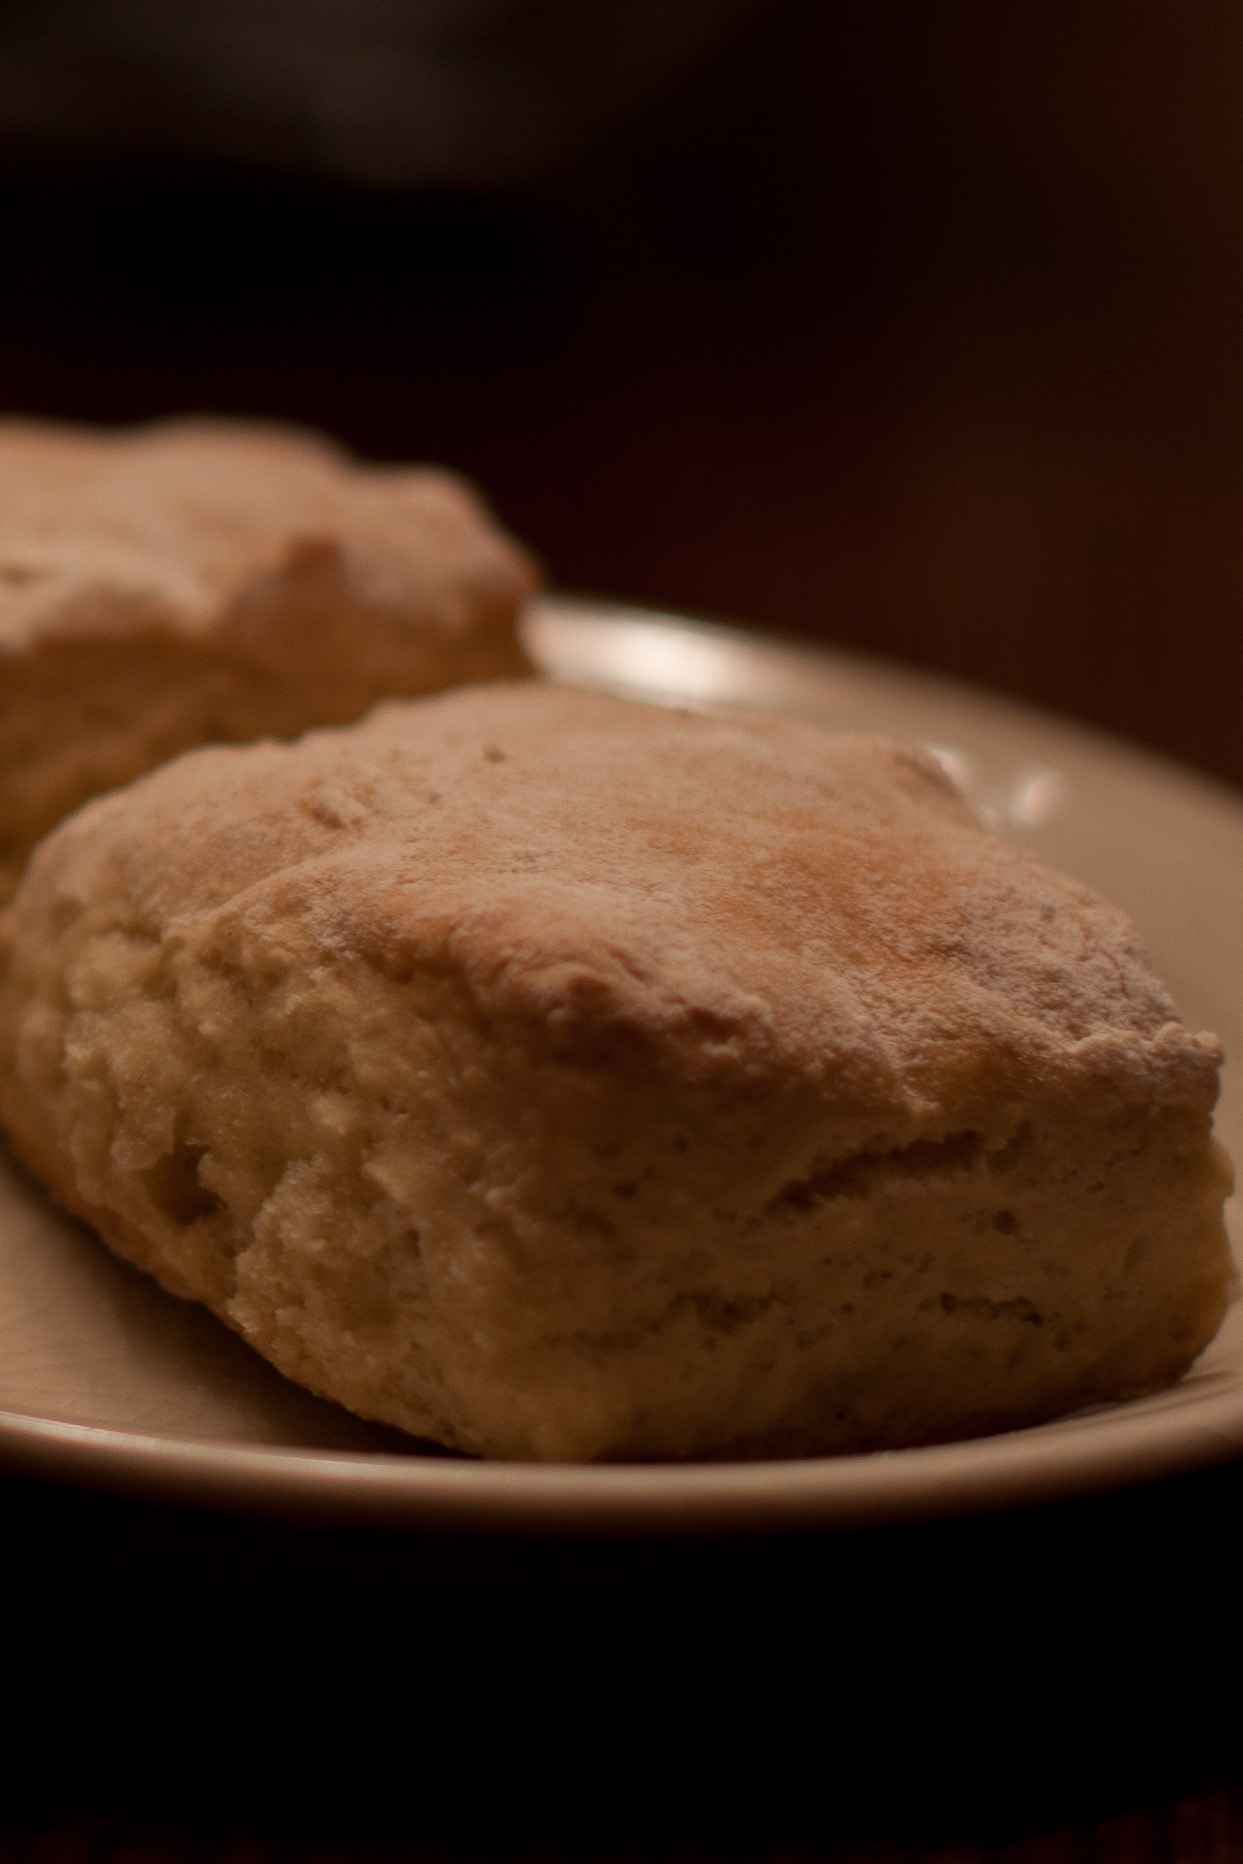 Vermont Cheddar Soup And Irish Scones From The Simon Pearce Cookbook Farm Share Mania